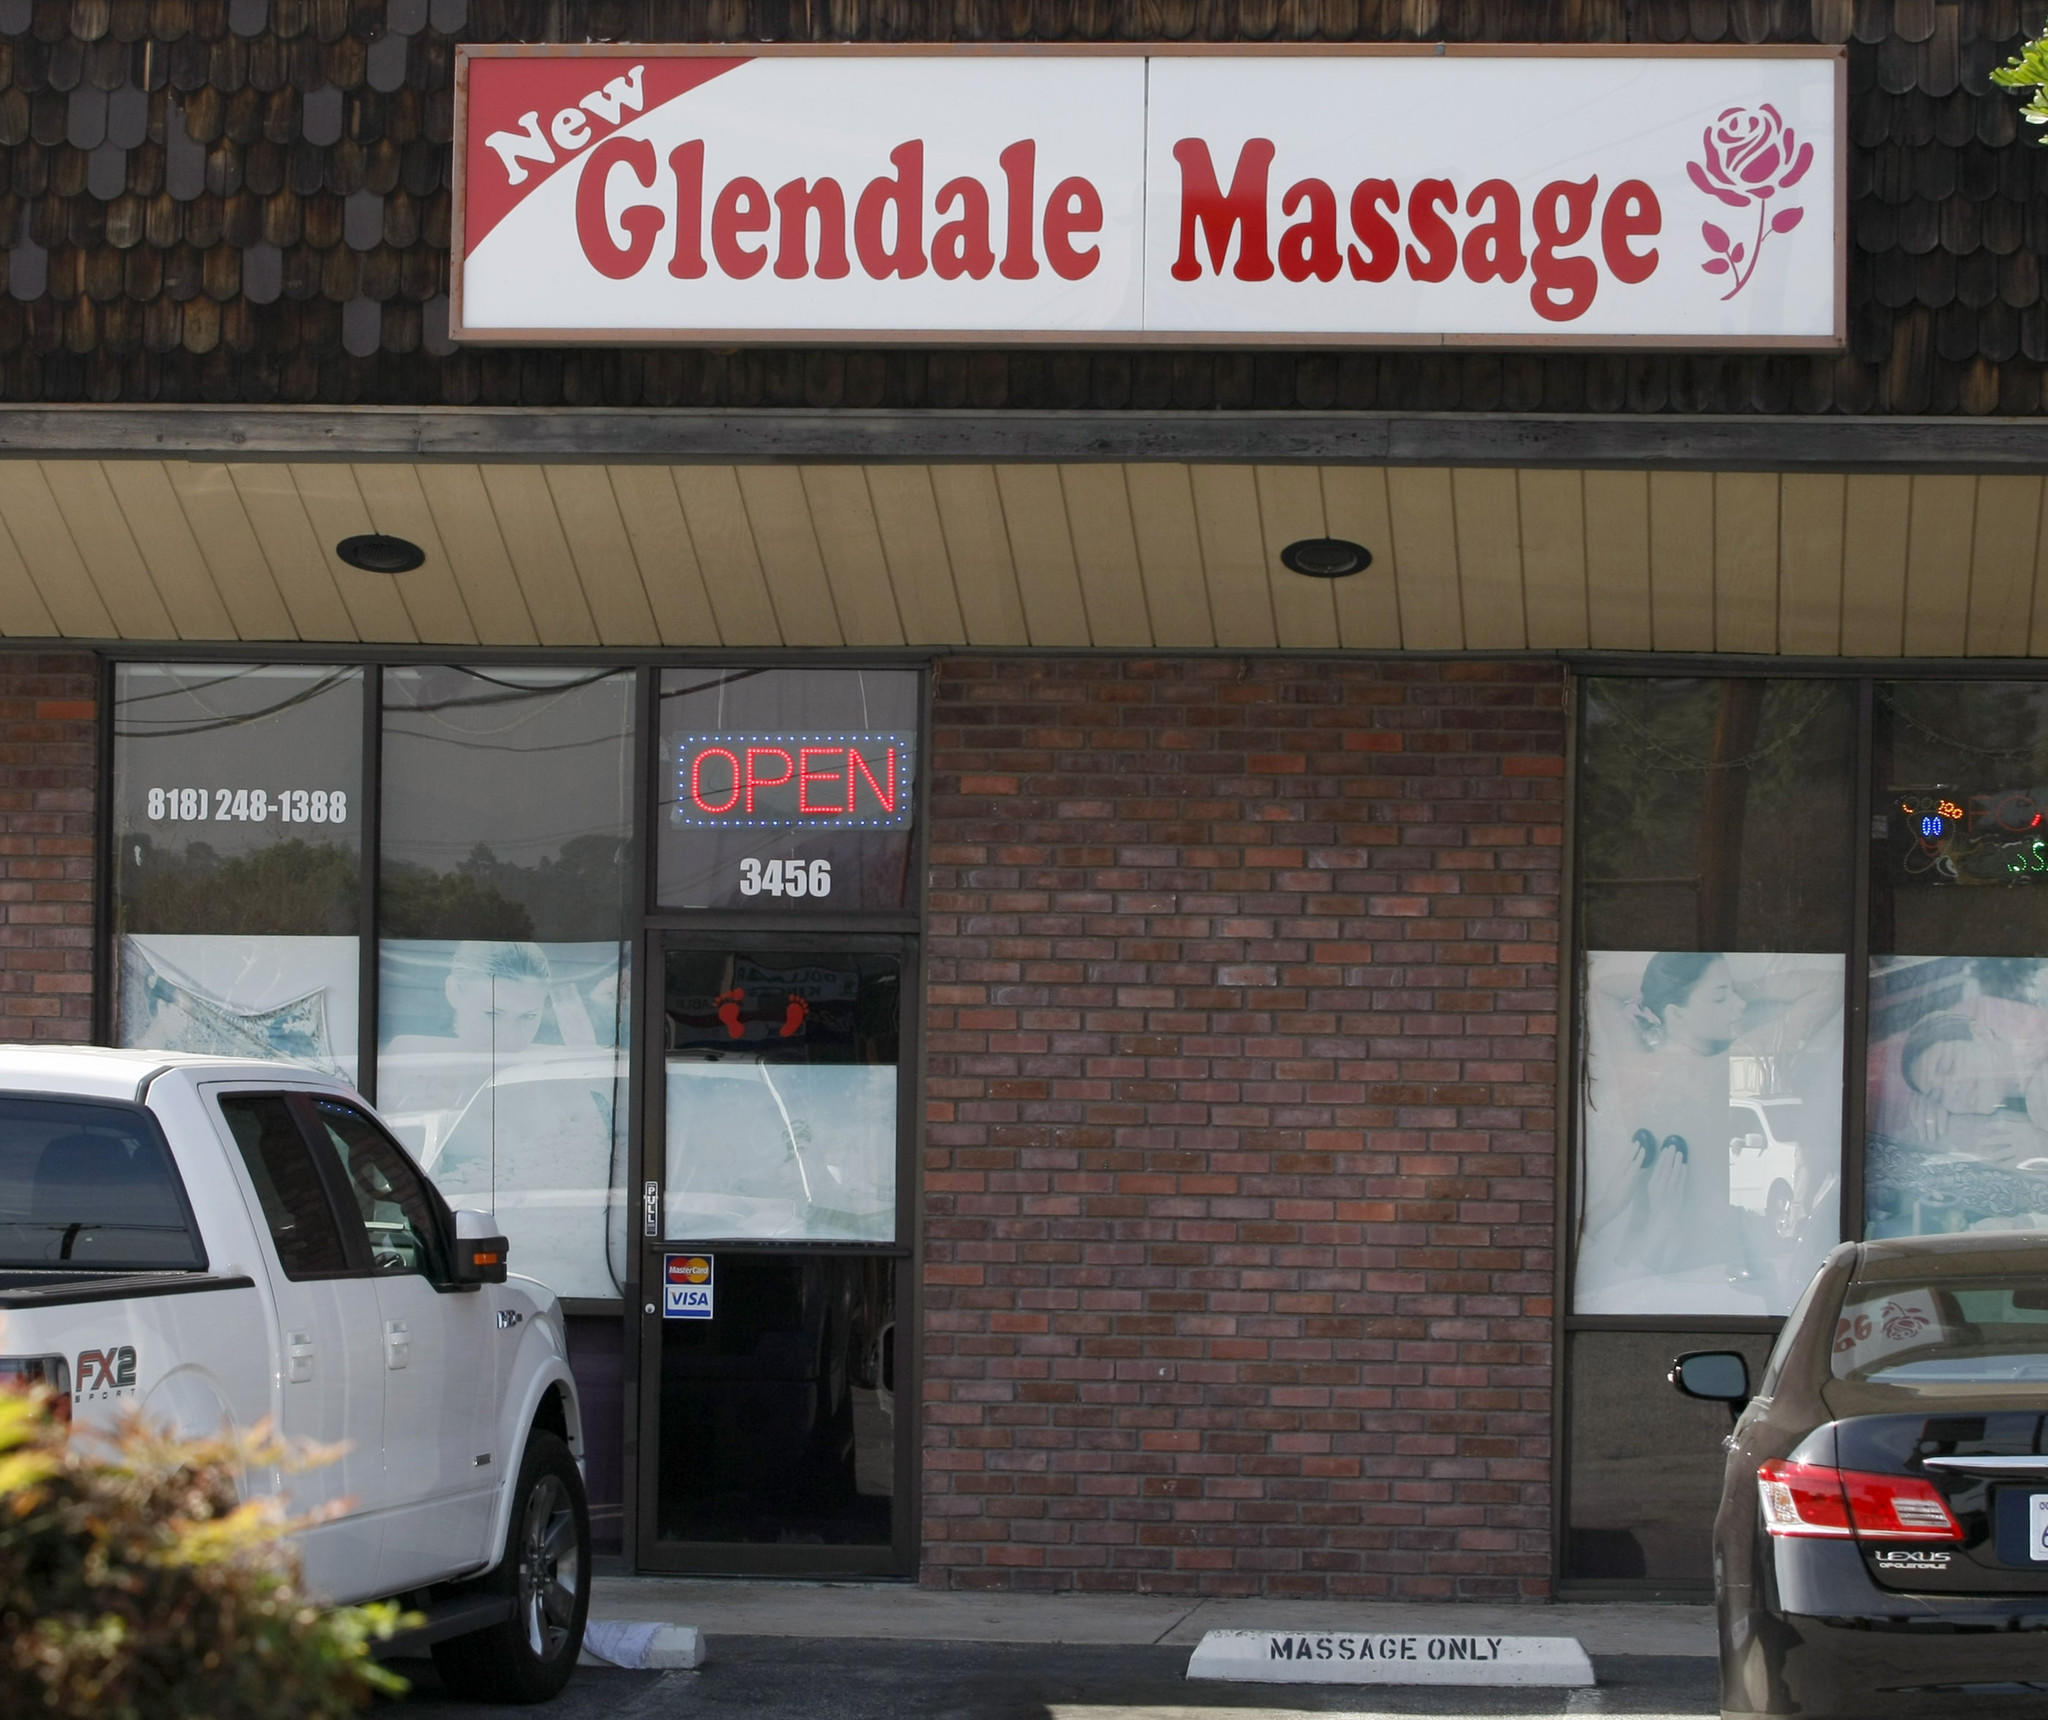 Glendale Massage, located at 3456 Foothill Blvd., pictured on Wednesday, January 29, 2014.